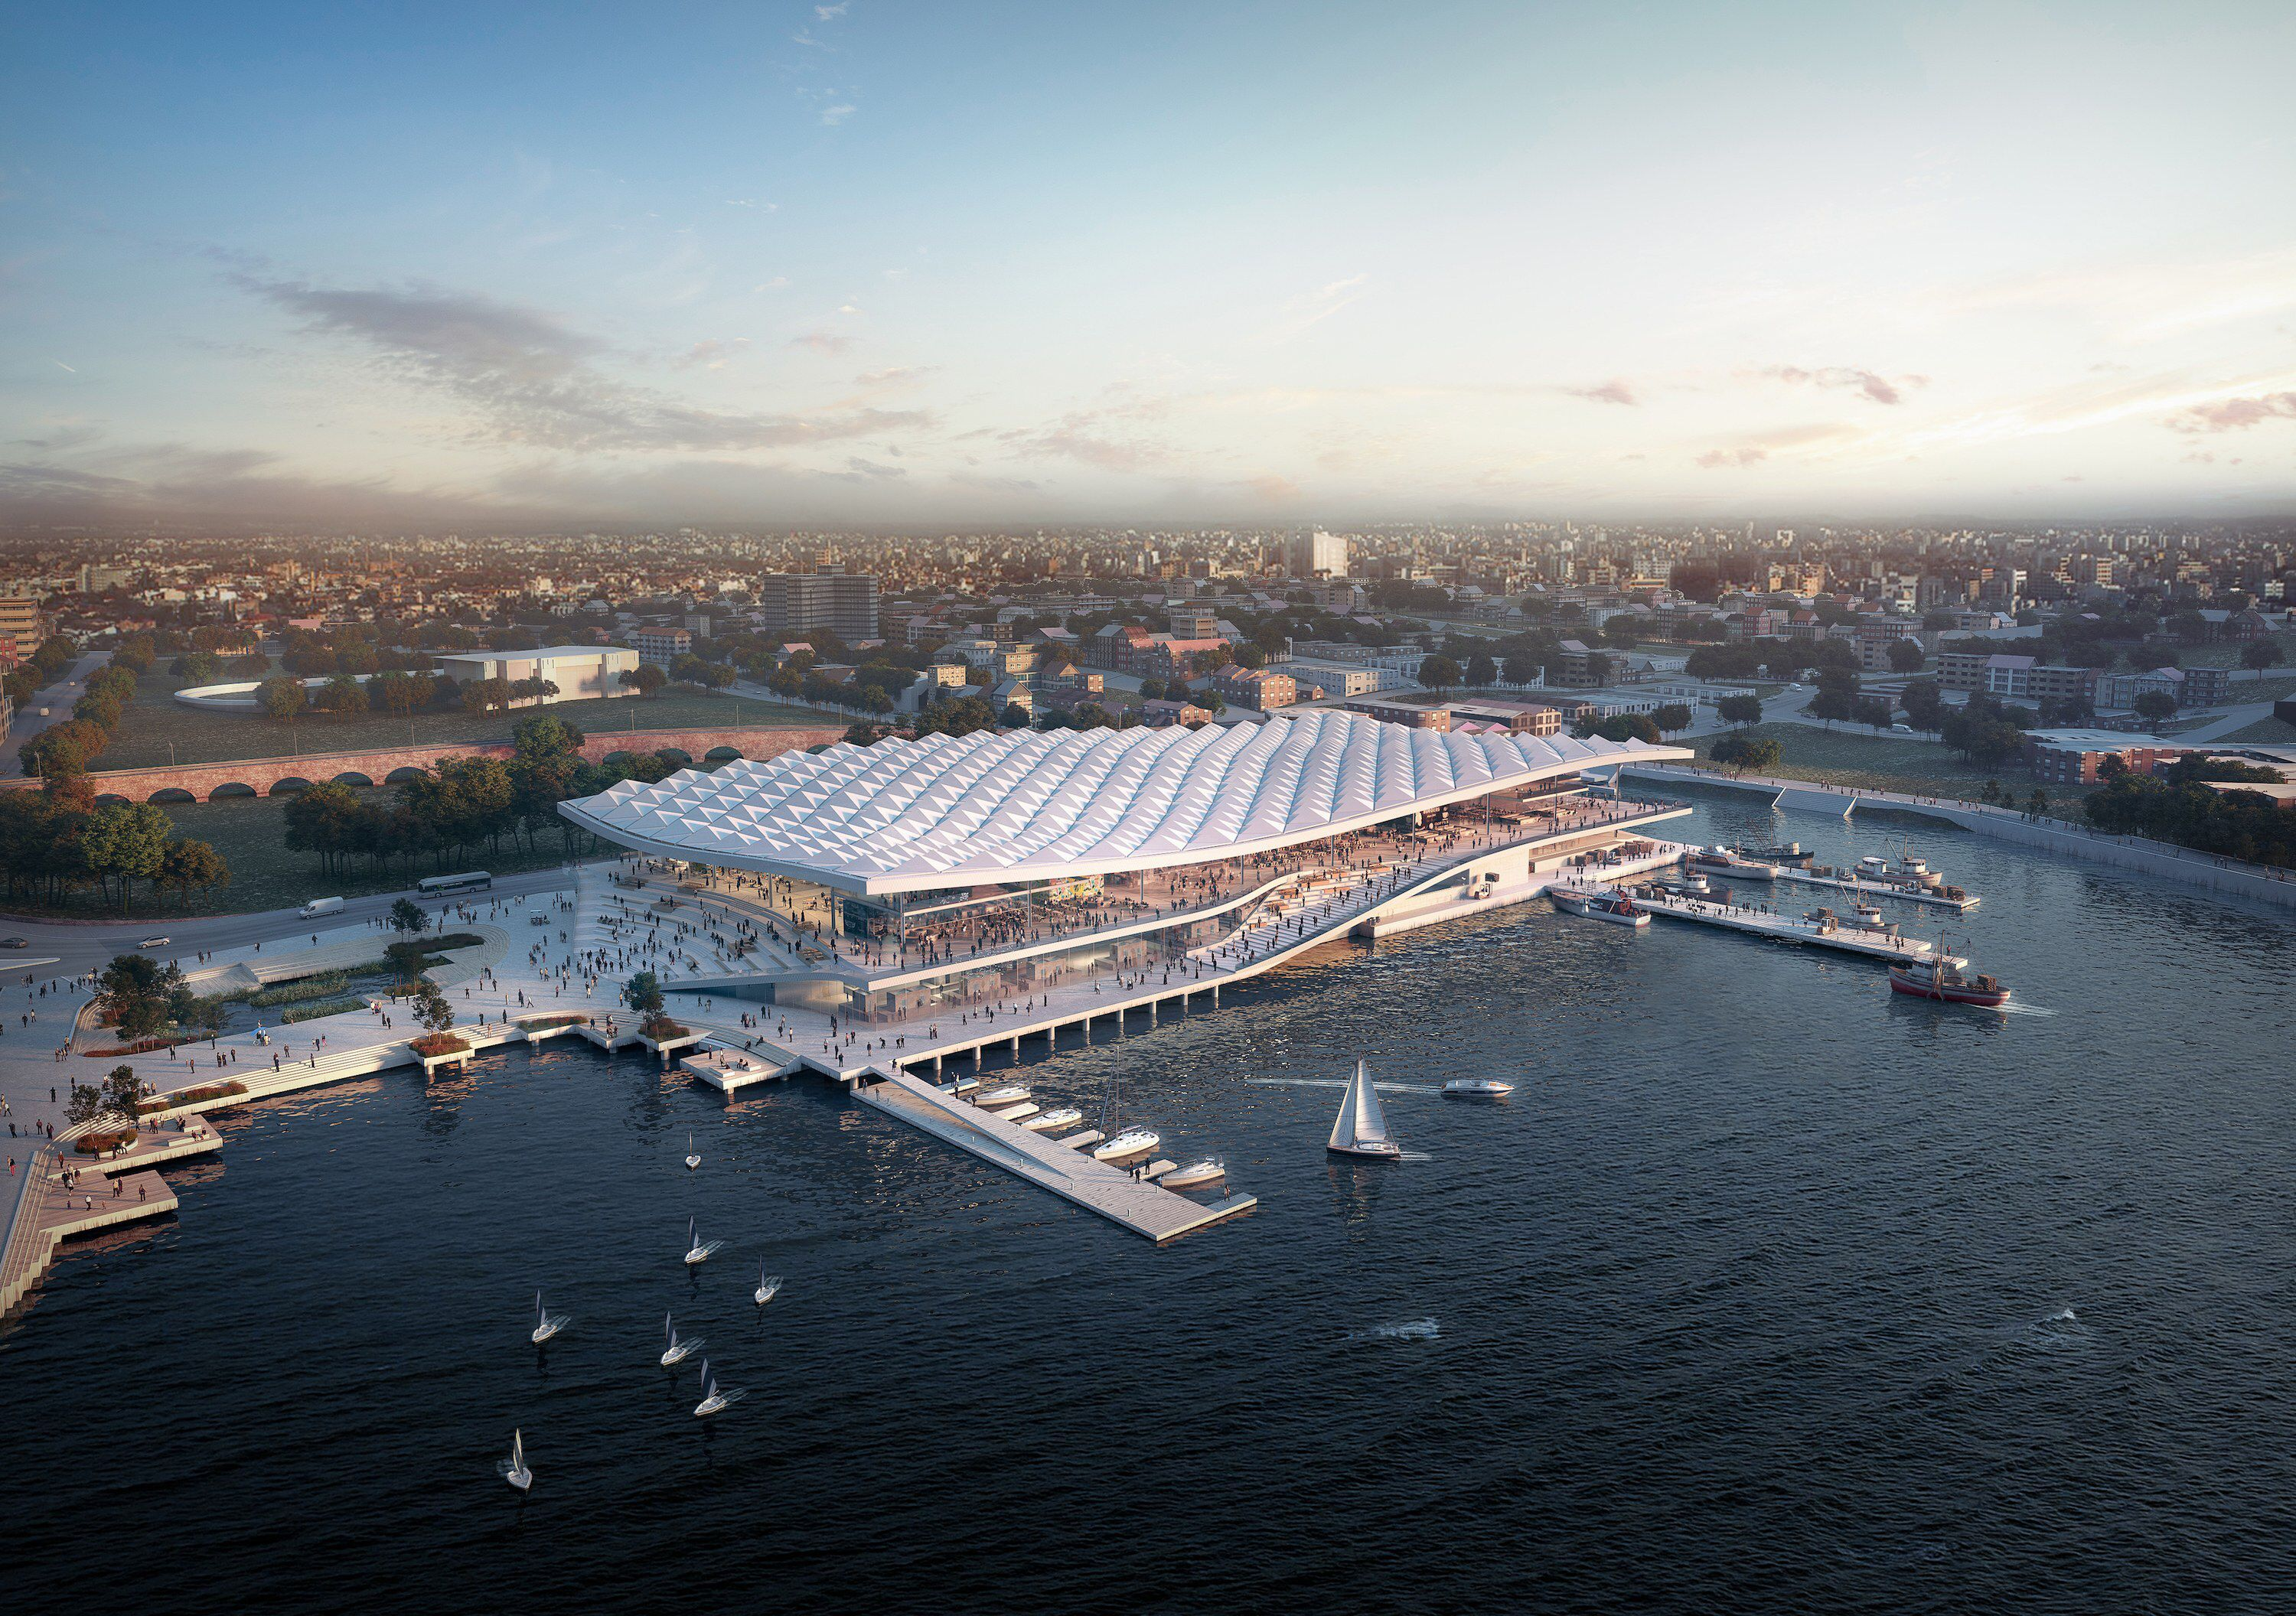 Sydney S New Fish Market Is A Futuristic Looking Structure With An